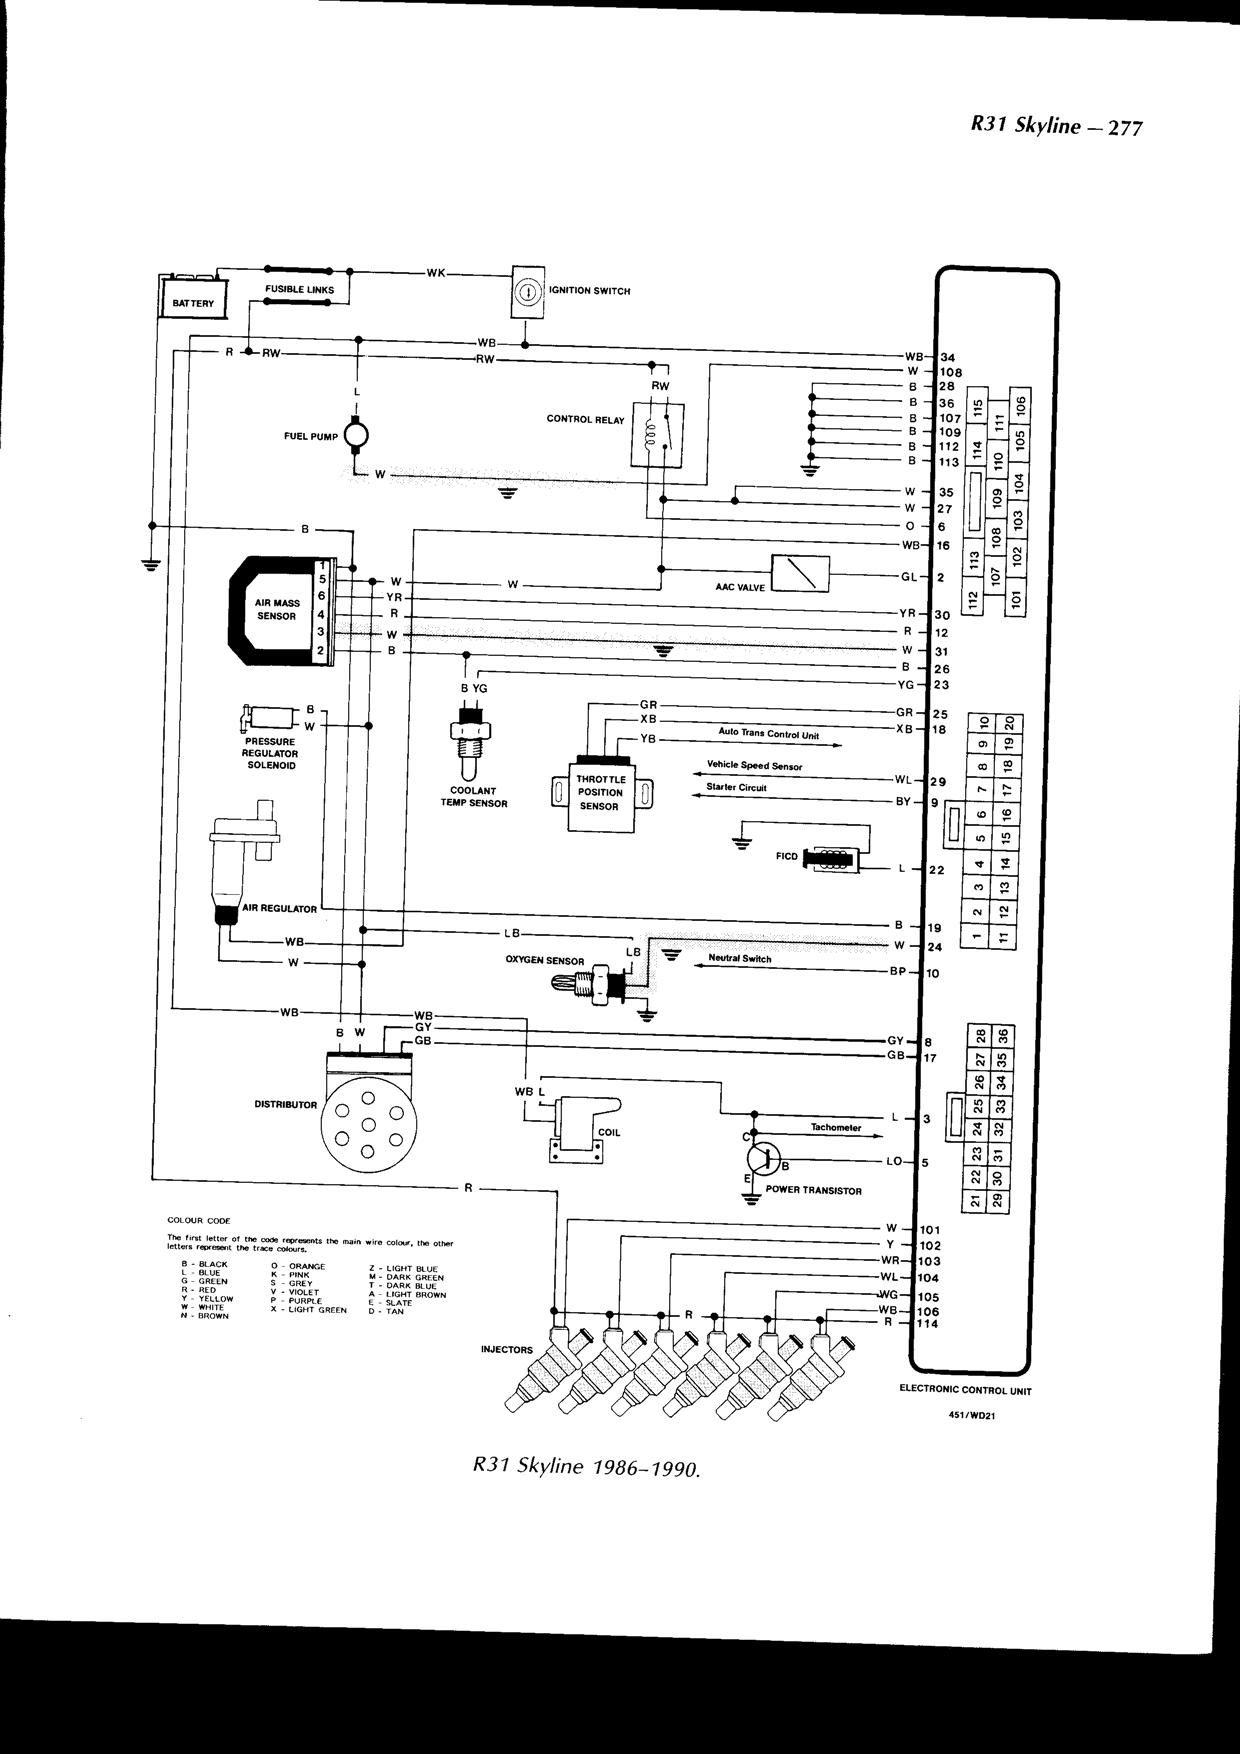 cd688f8659931bf98d274ca120c931d1 nissan 1400 electrical wiring diagram nissan pinterest Wiring Harness Diagram at bayanpartner.co